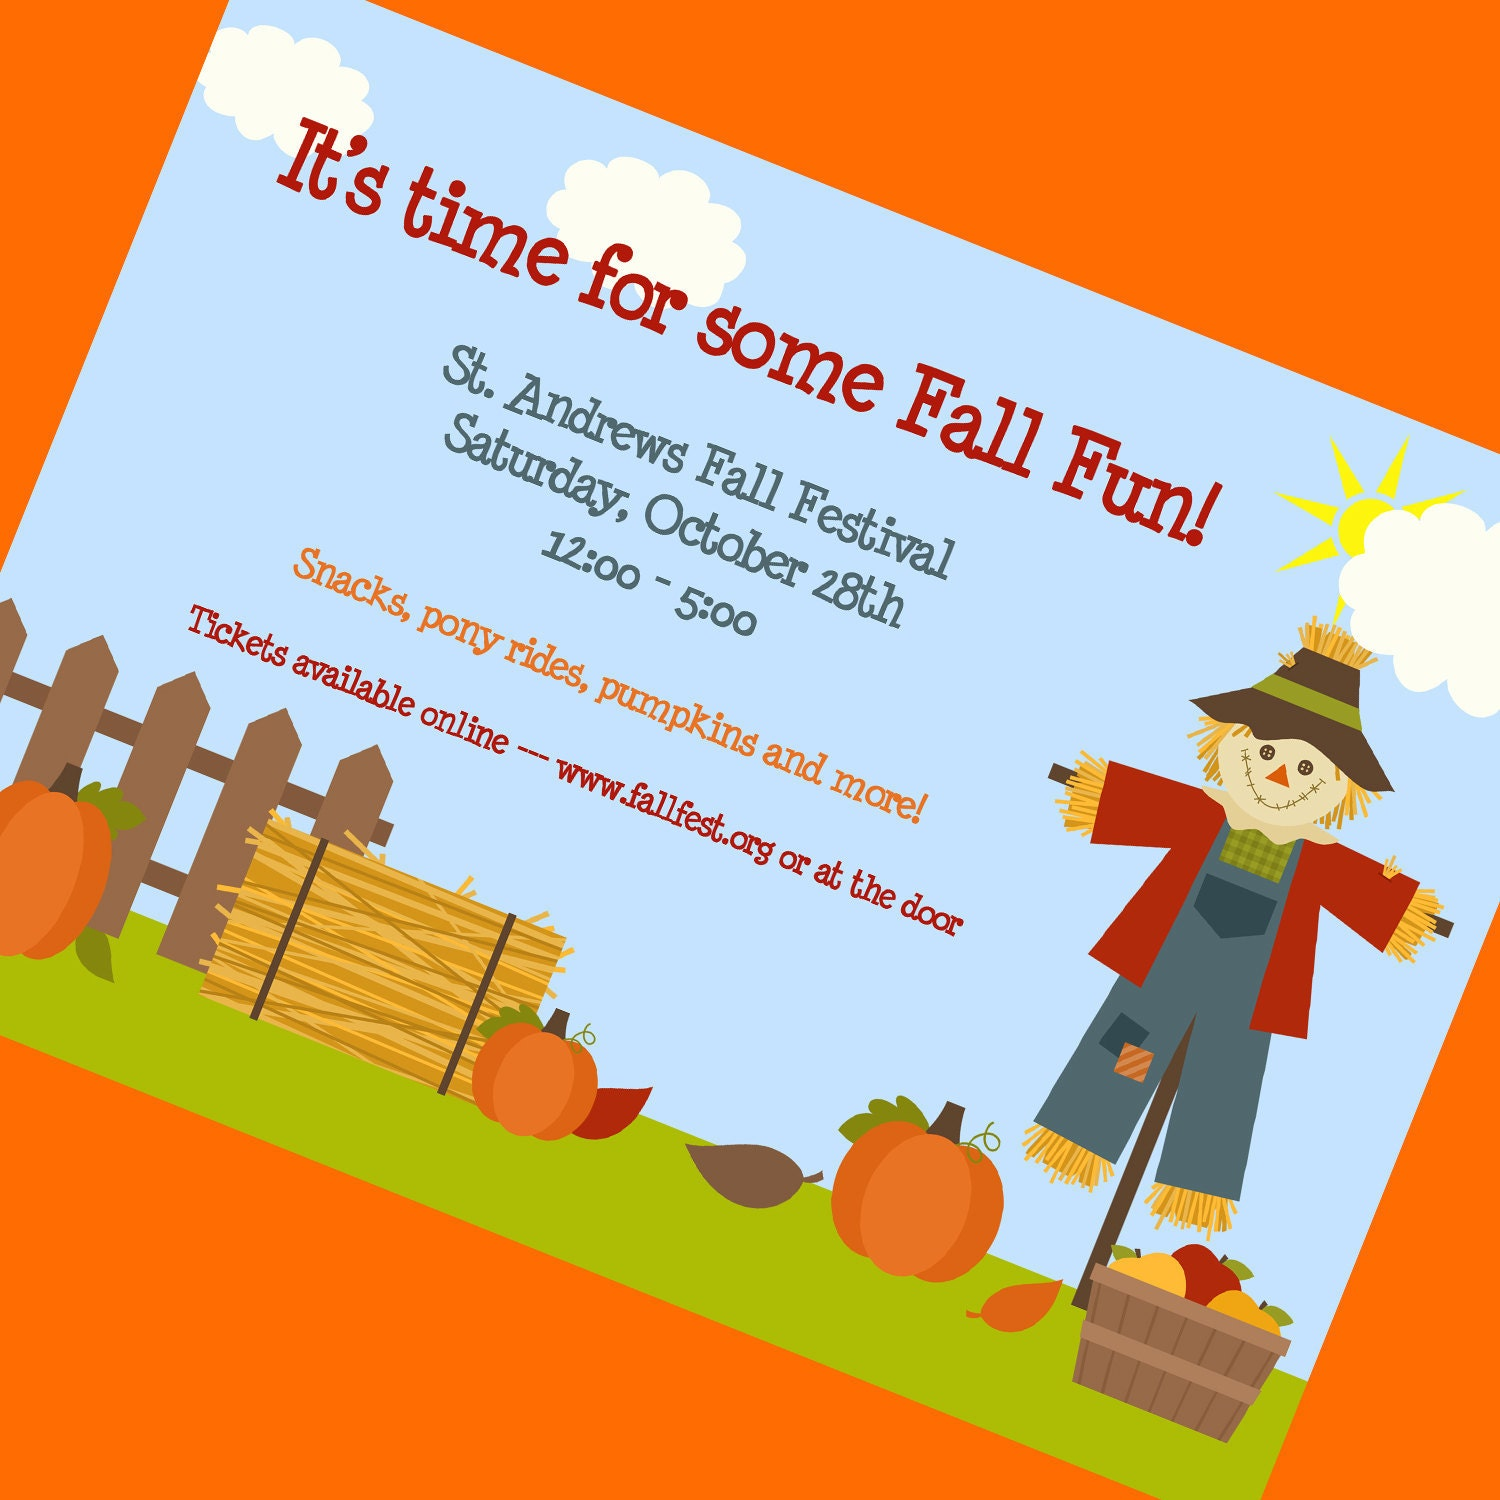 Fall Party Invitation Wording was best invitations ideas